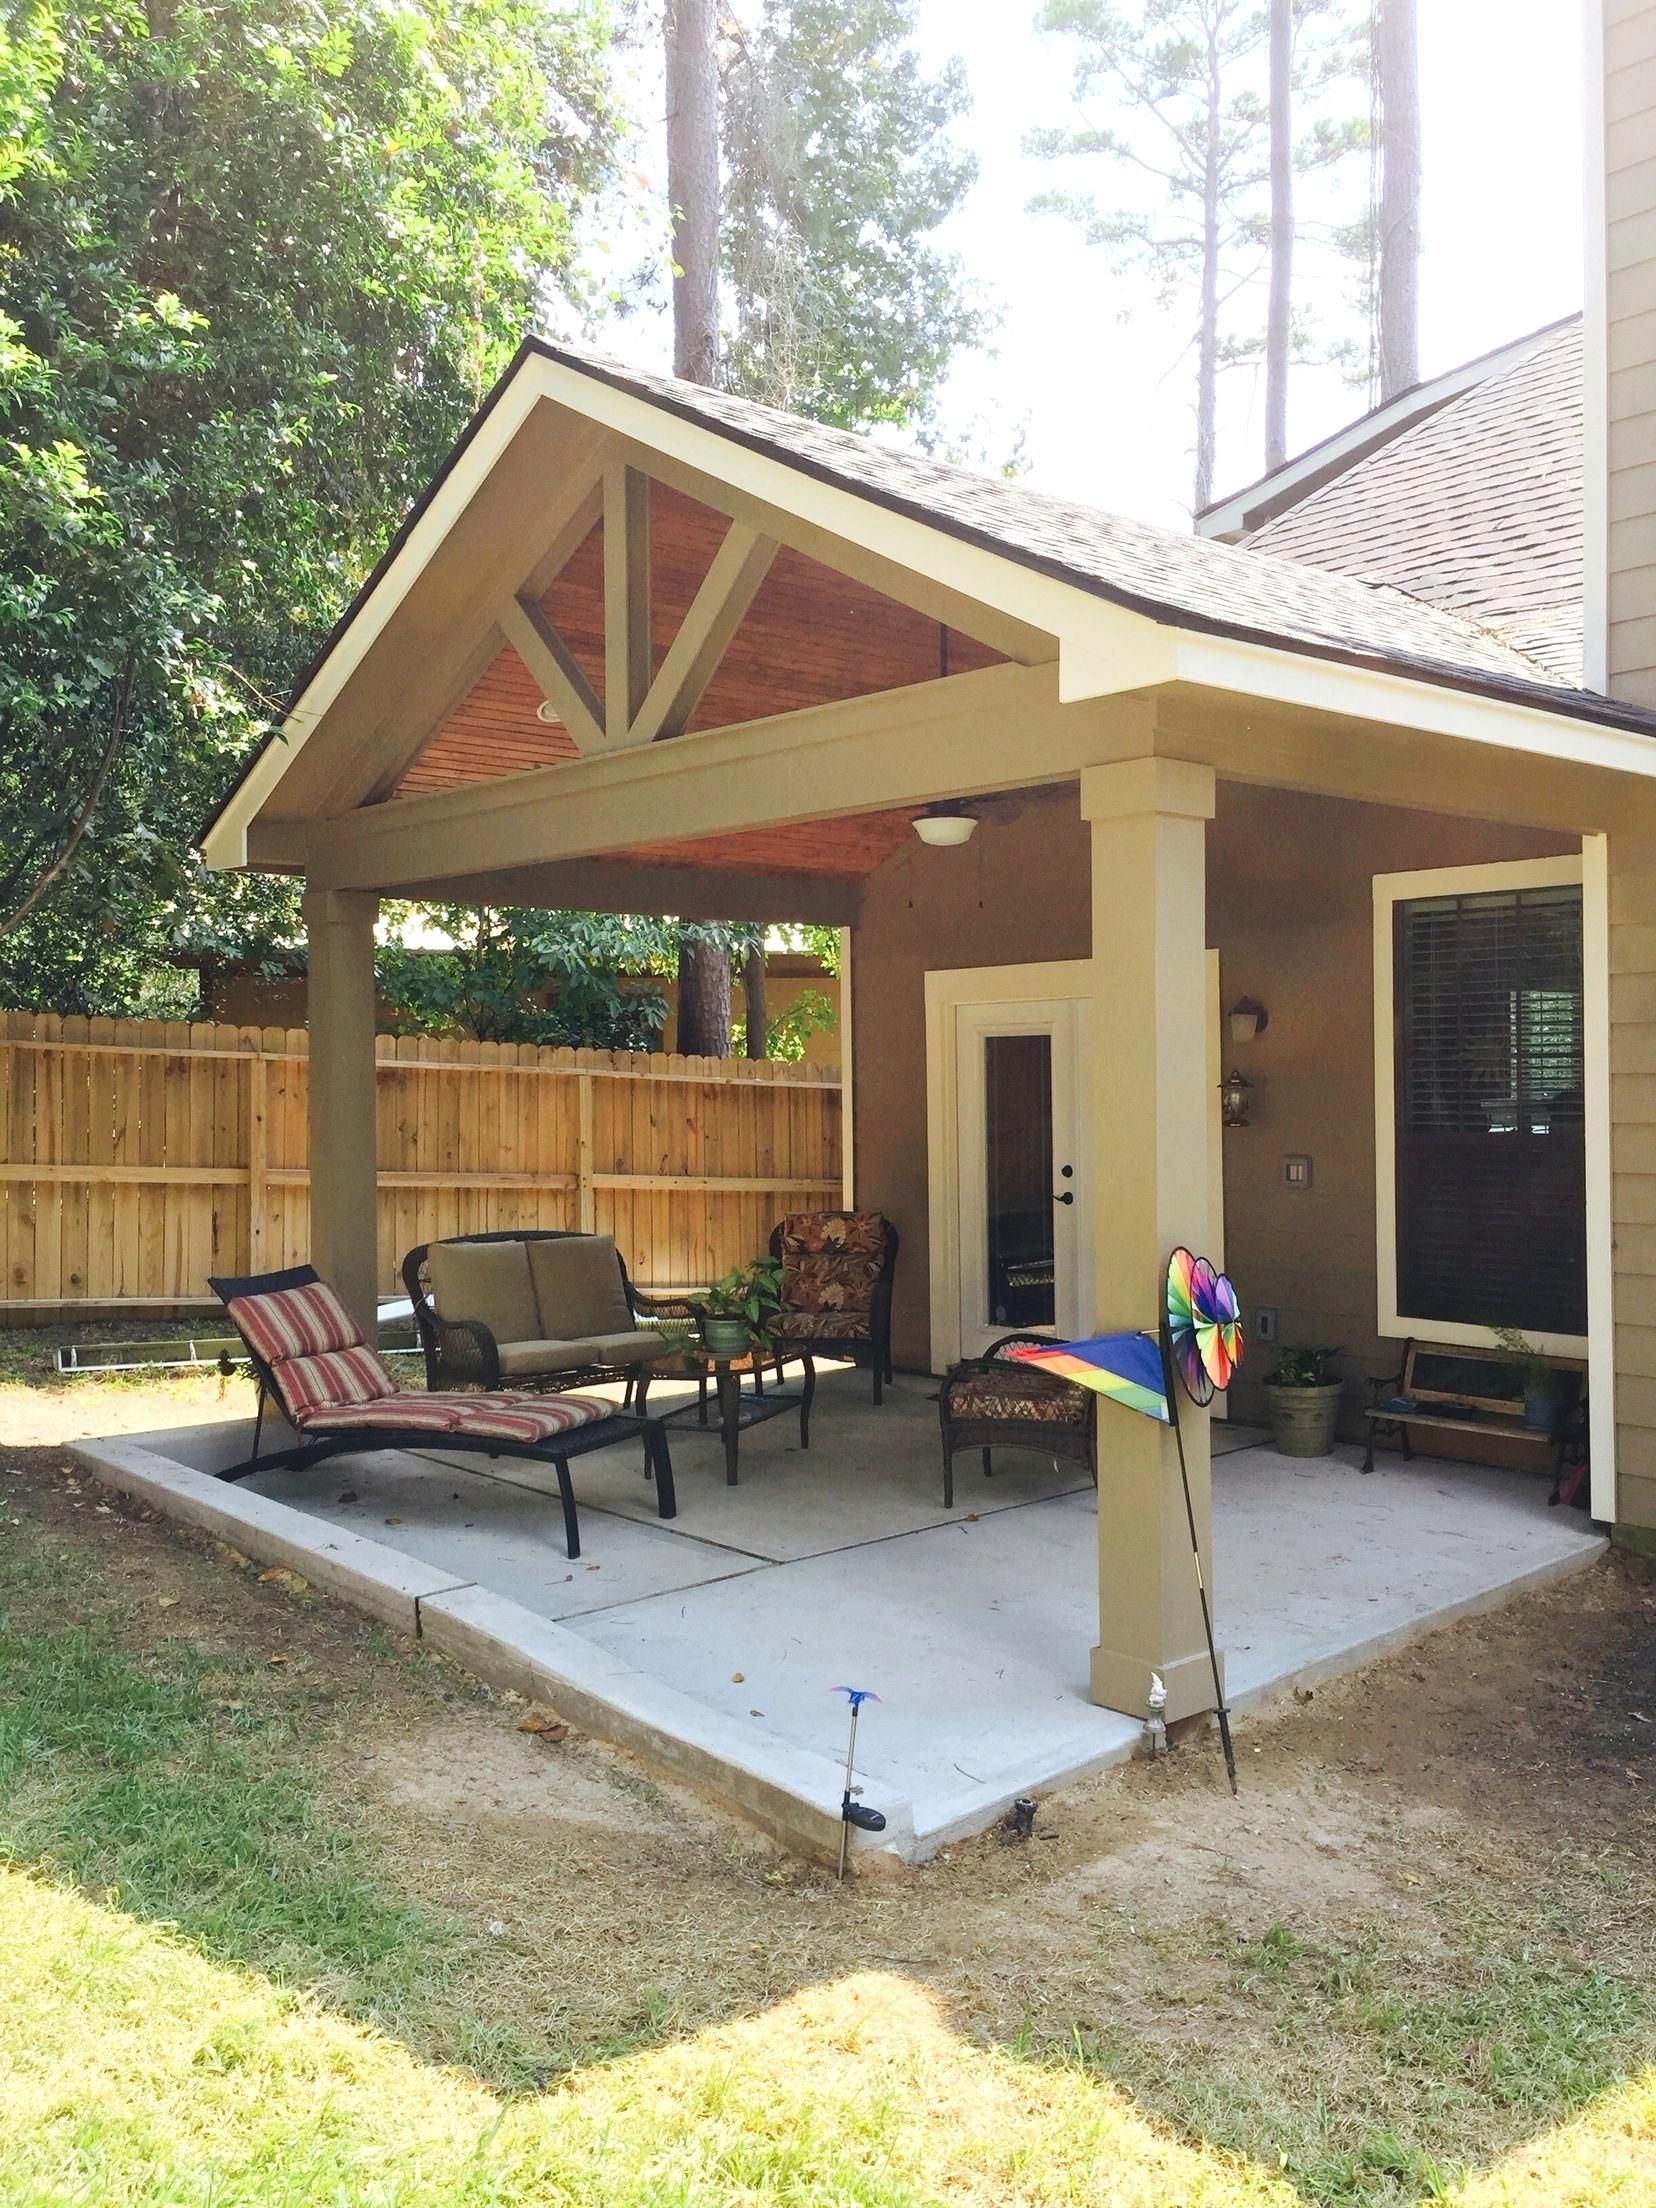 Fascinating Patio Cover Design Plans Framing N How To Build A Porch With A Gable Roof Thesouvlakihouse Patio Covered Patio Design Patio Makeover Concrete Patio